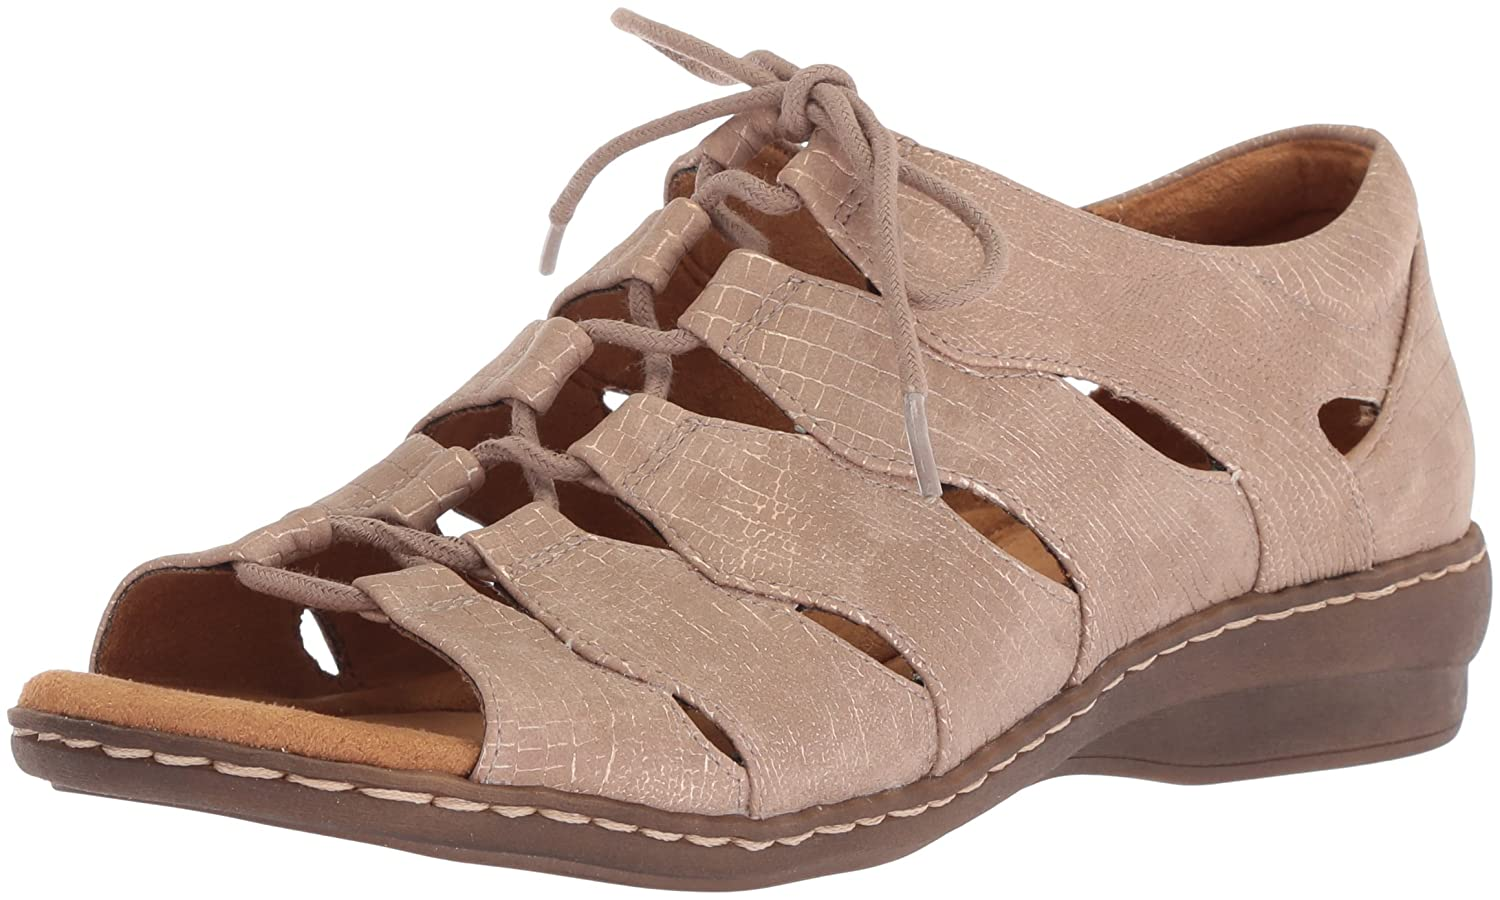 NATURAL SOUL Women's Beatrice Fisherman Sandal B072BC6K3J 7.5 W US|Rose